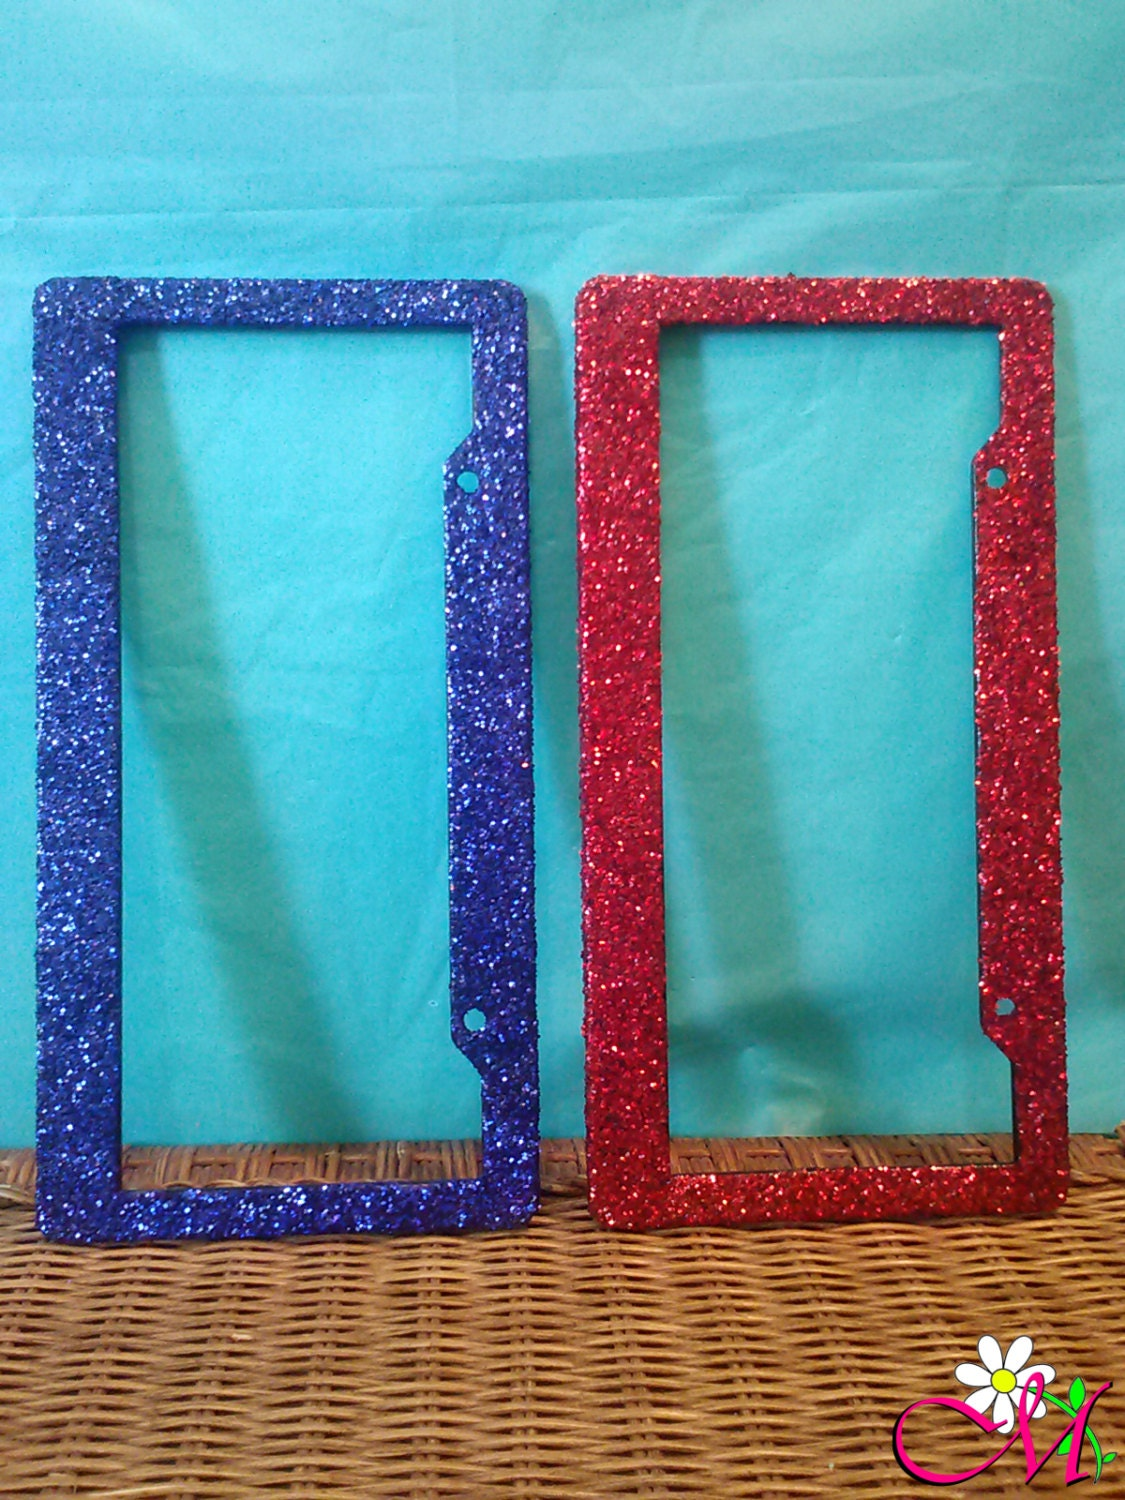 Glitter Stainless Steel License Plate Frame, Bling License Plate ...